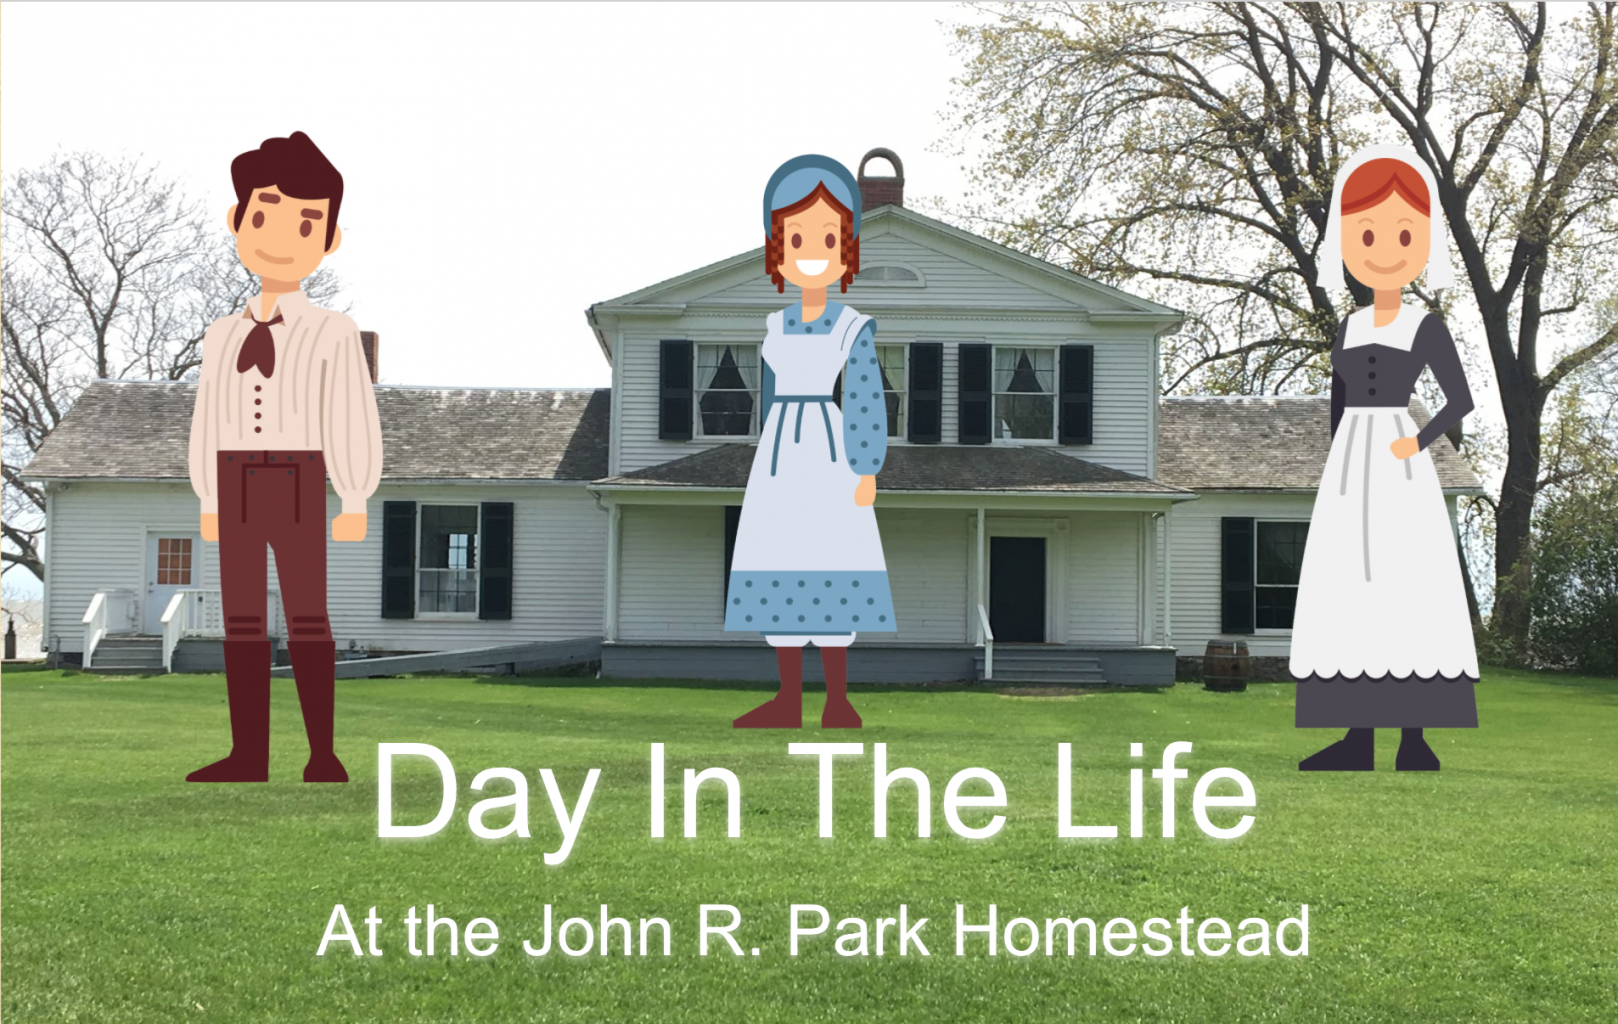 cartoon characters in front of the John R. Park Homestead